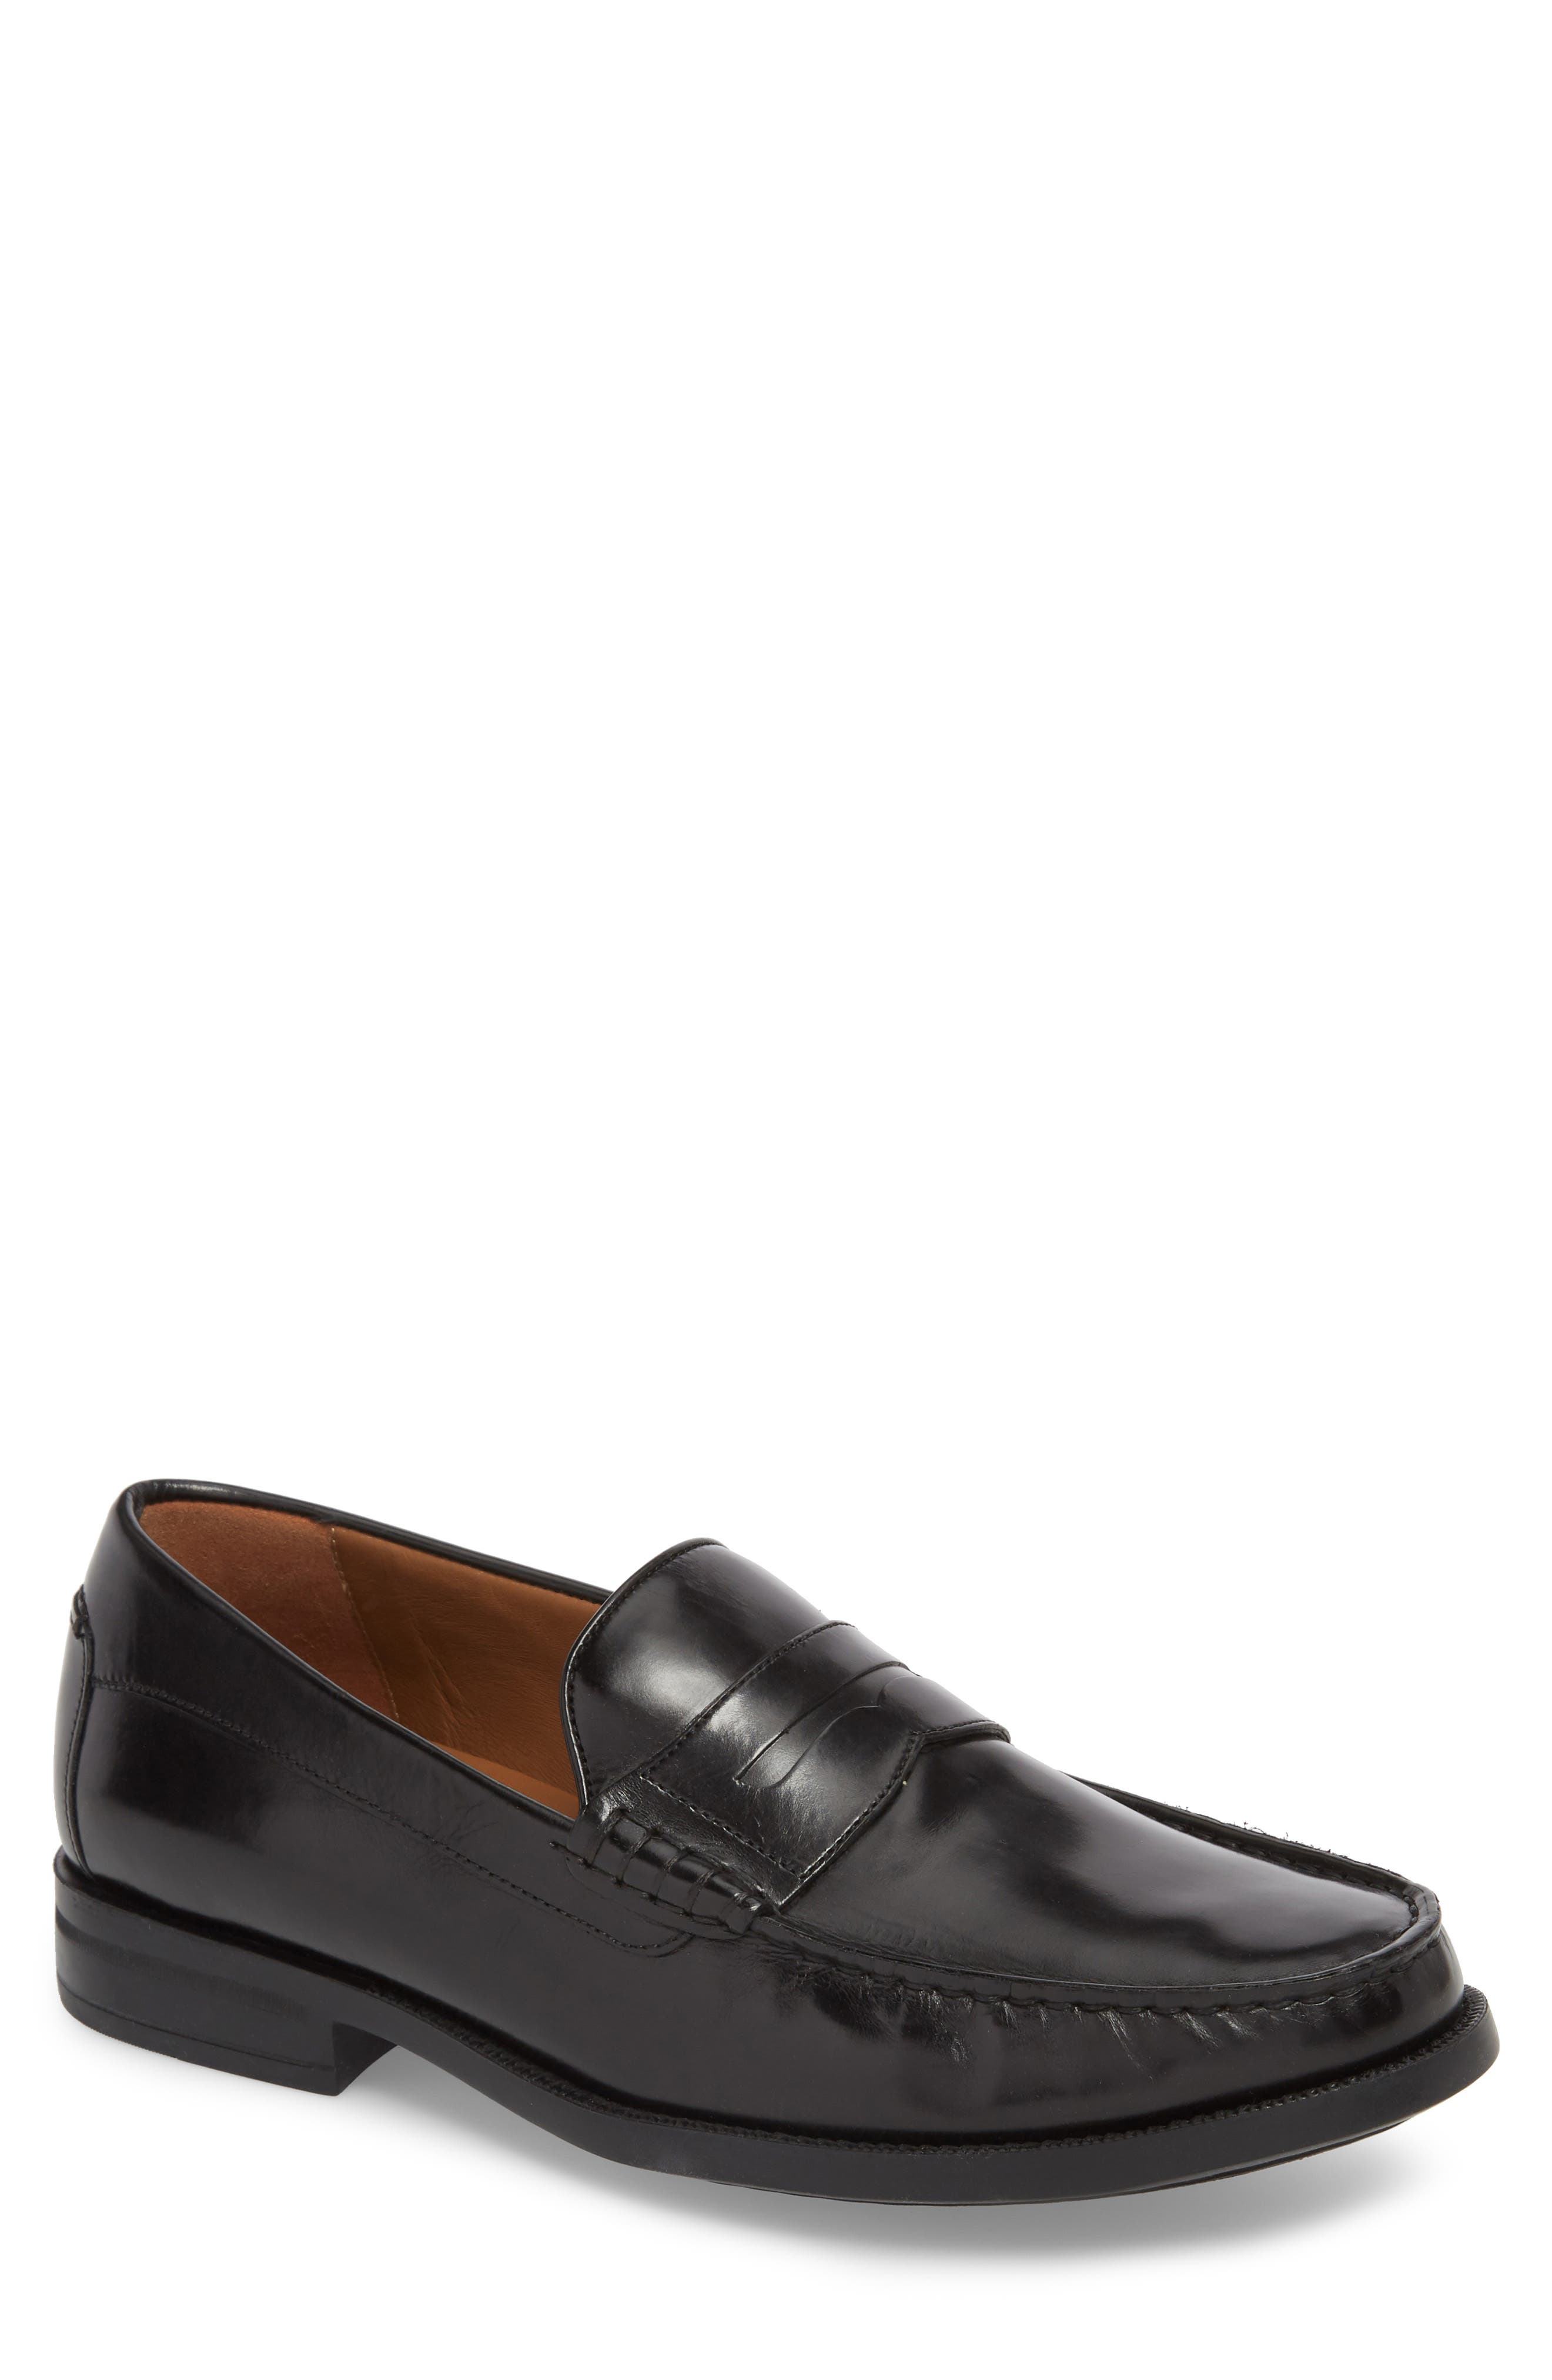 Chadwell Penny Loafer,                         Main,                         color, BLACK LEATHER